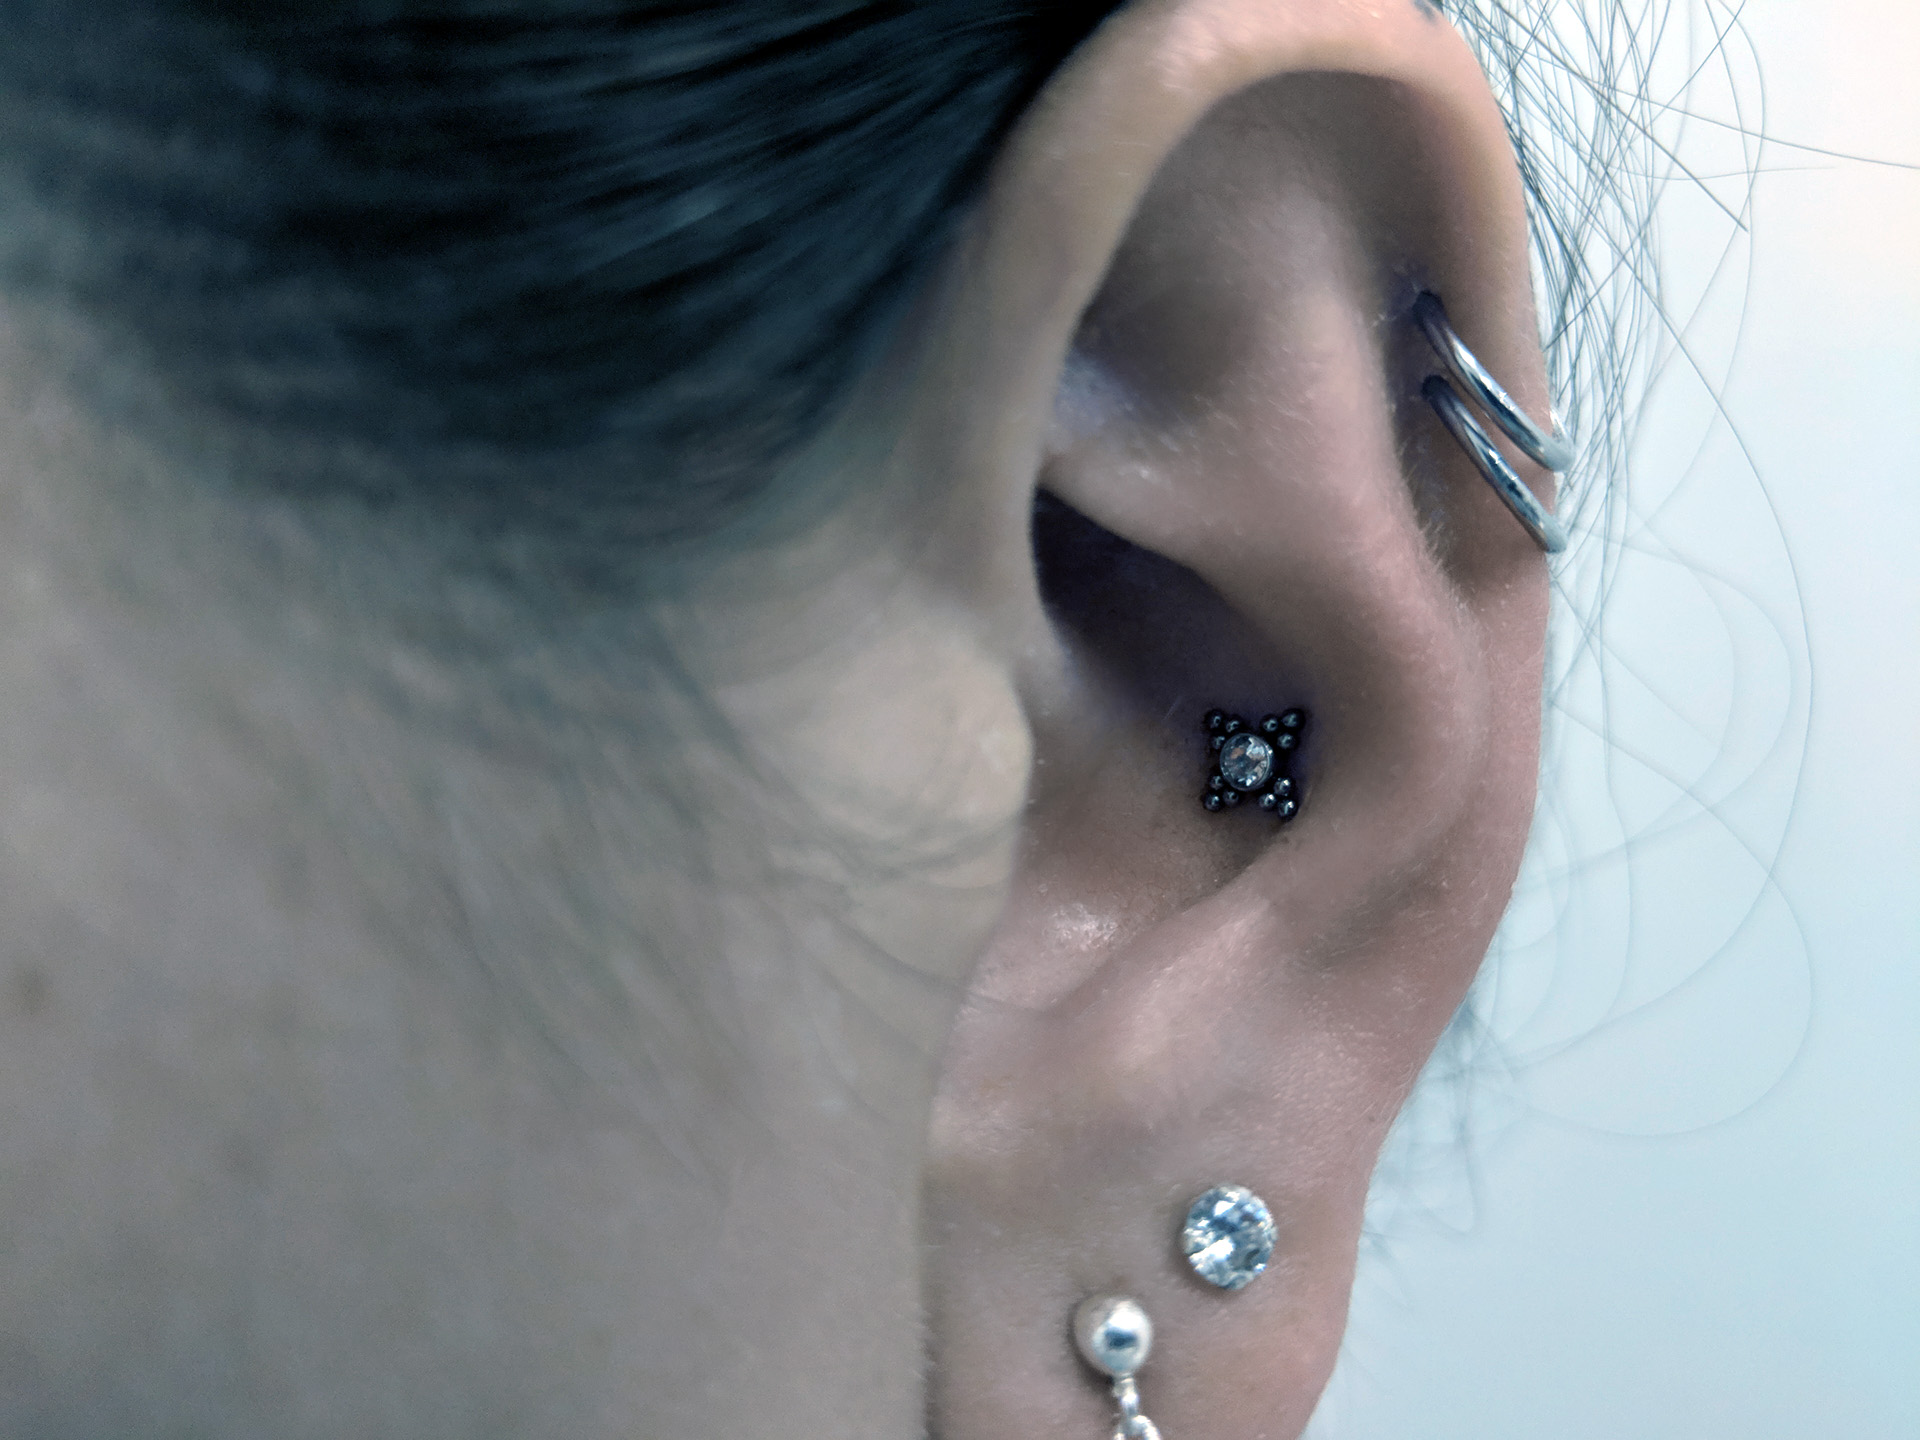 Double Helix Piercing with Conch Piercing